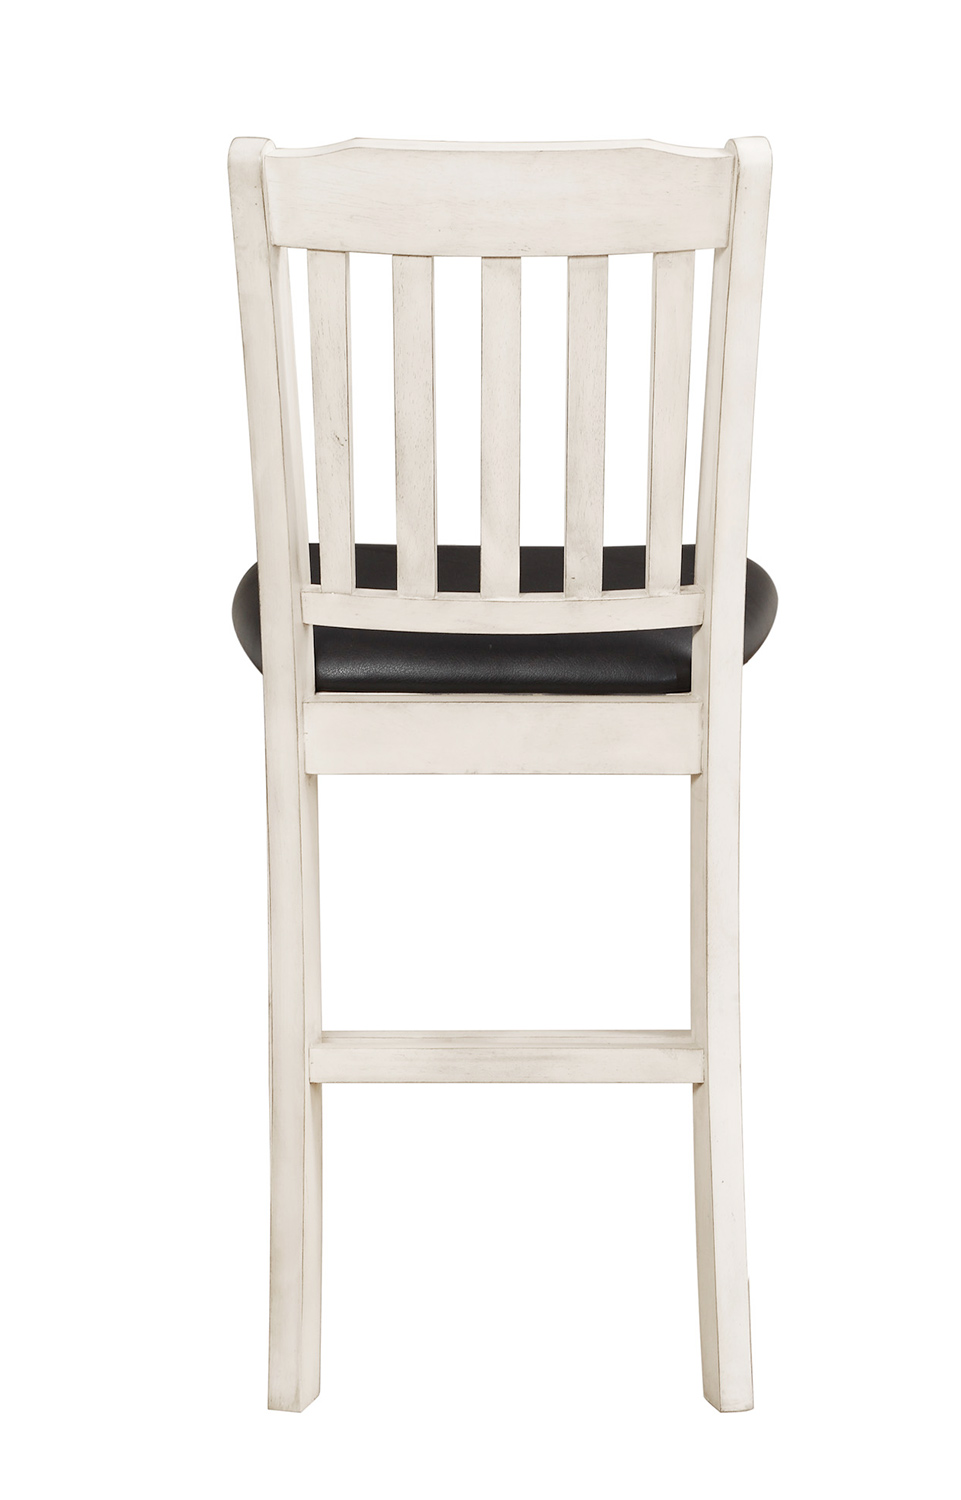 Homelegance Kiwi Counter Height Chair - White Wash